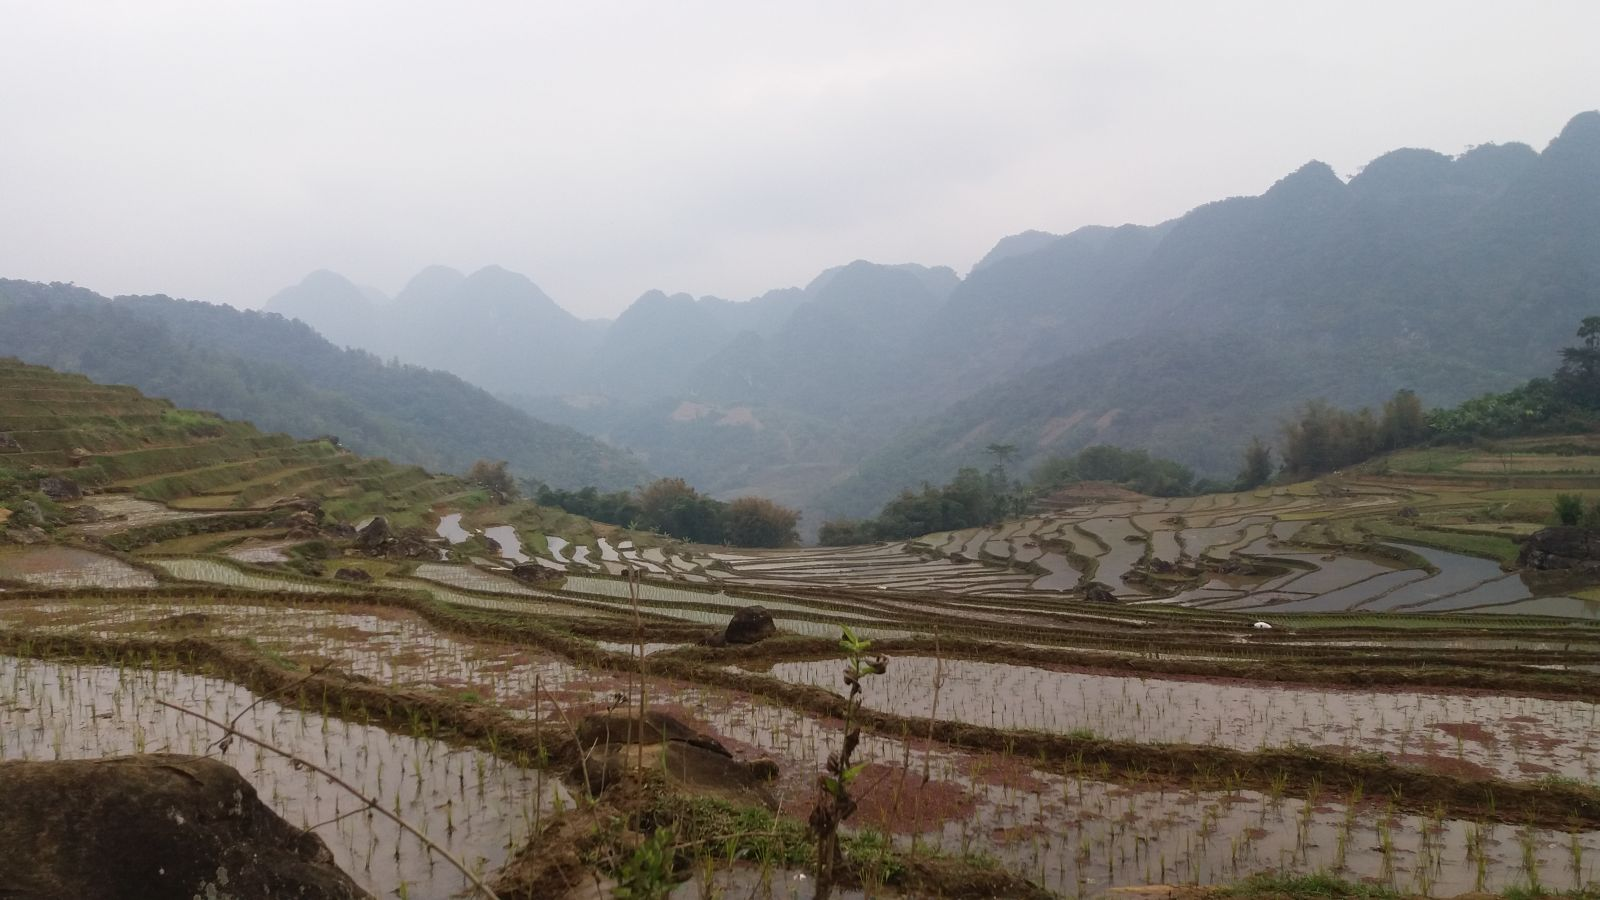 Pu Luong Nature Reserve Trekking Tour - Kho Muong villages